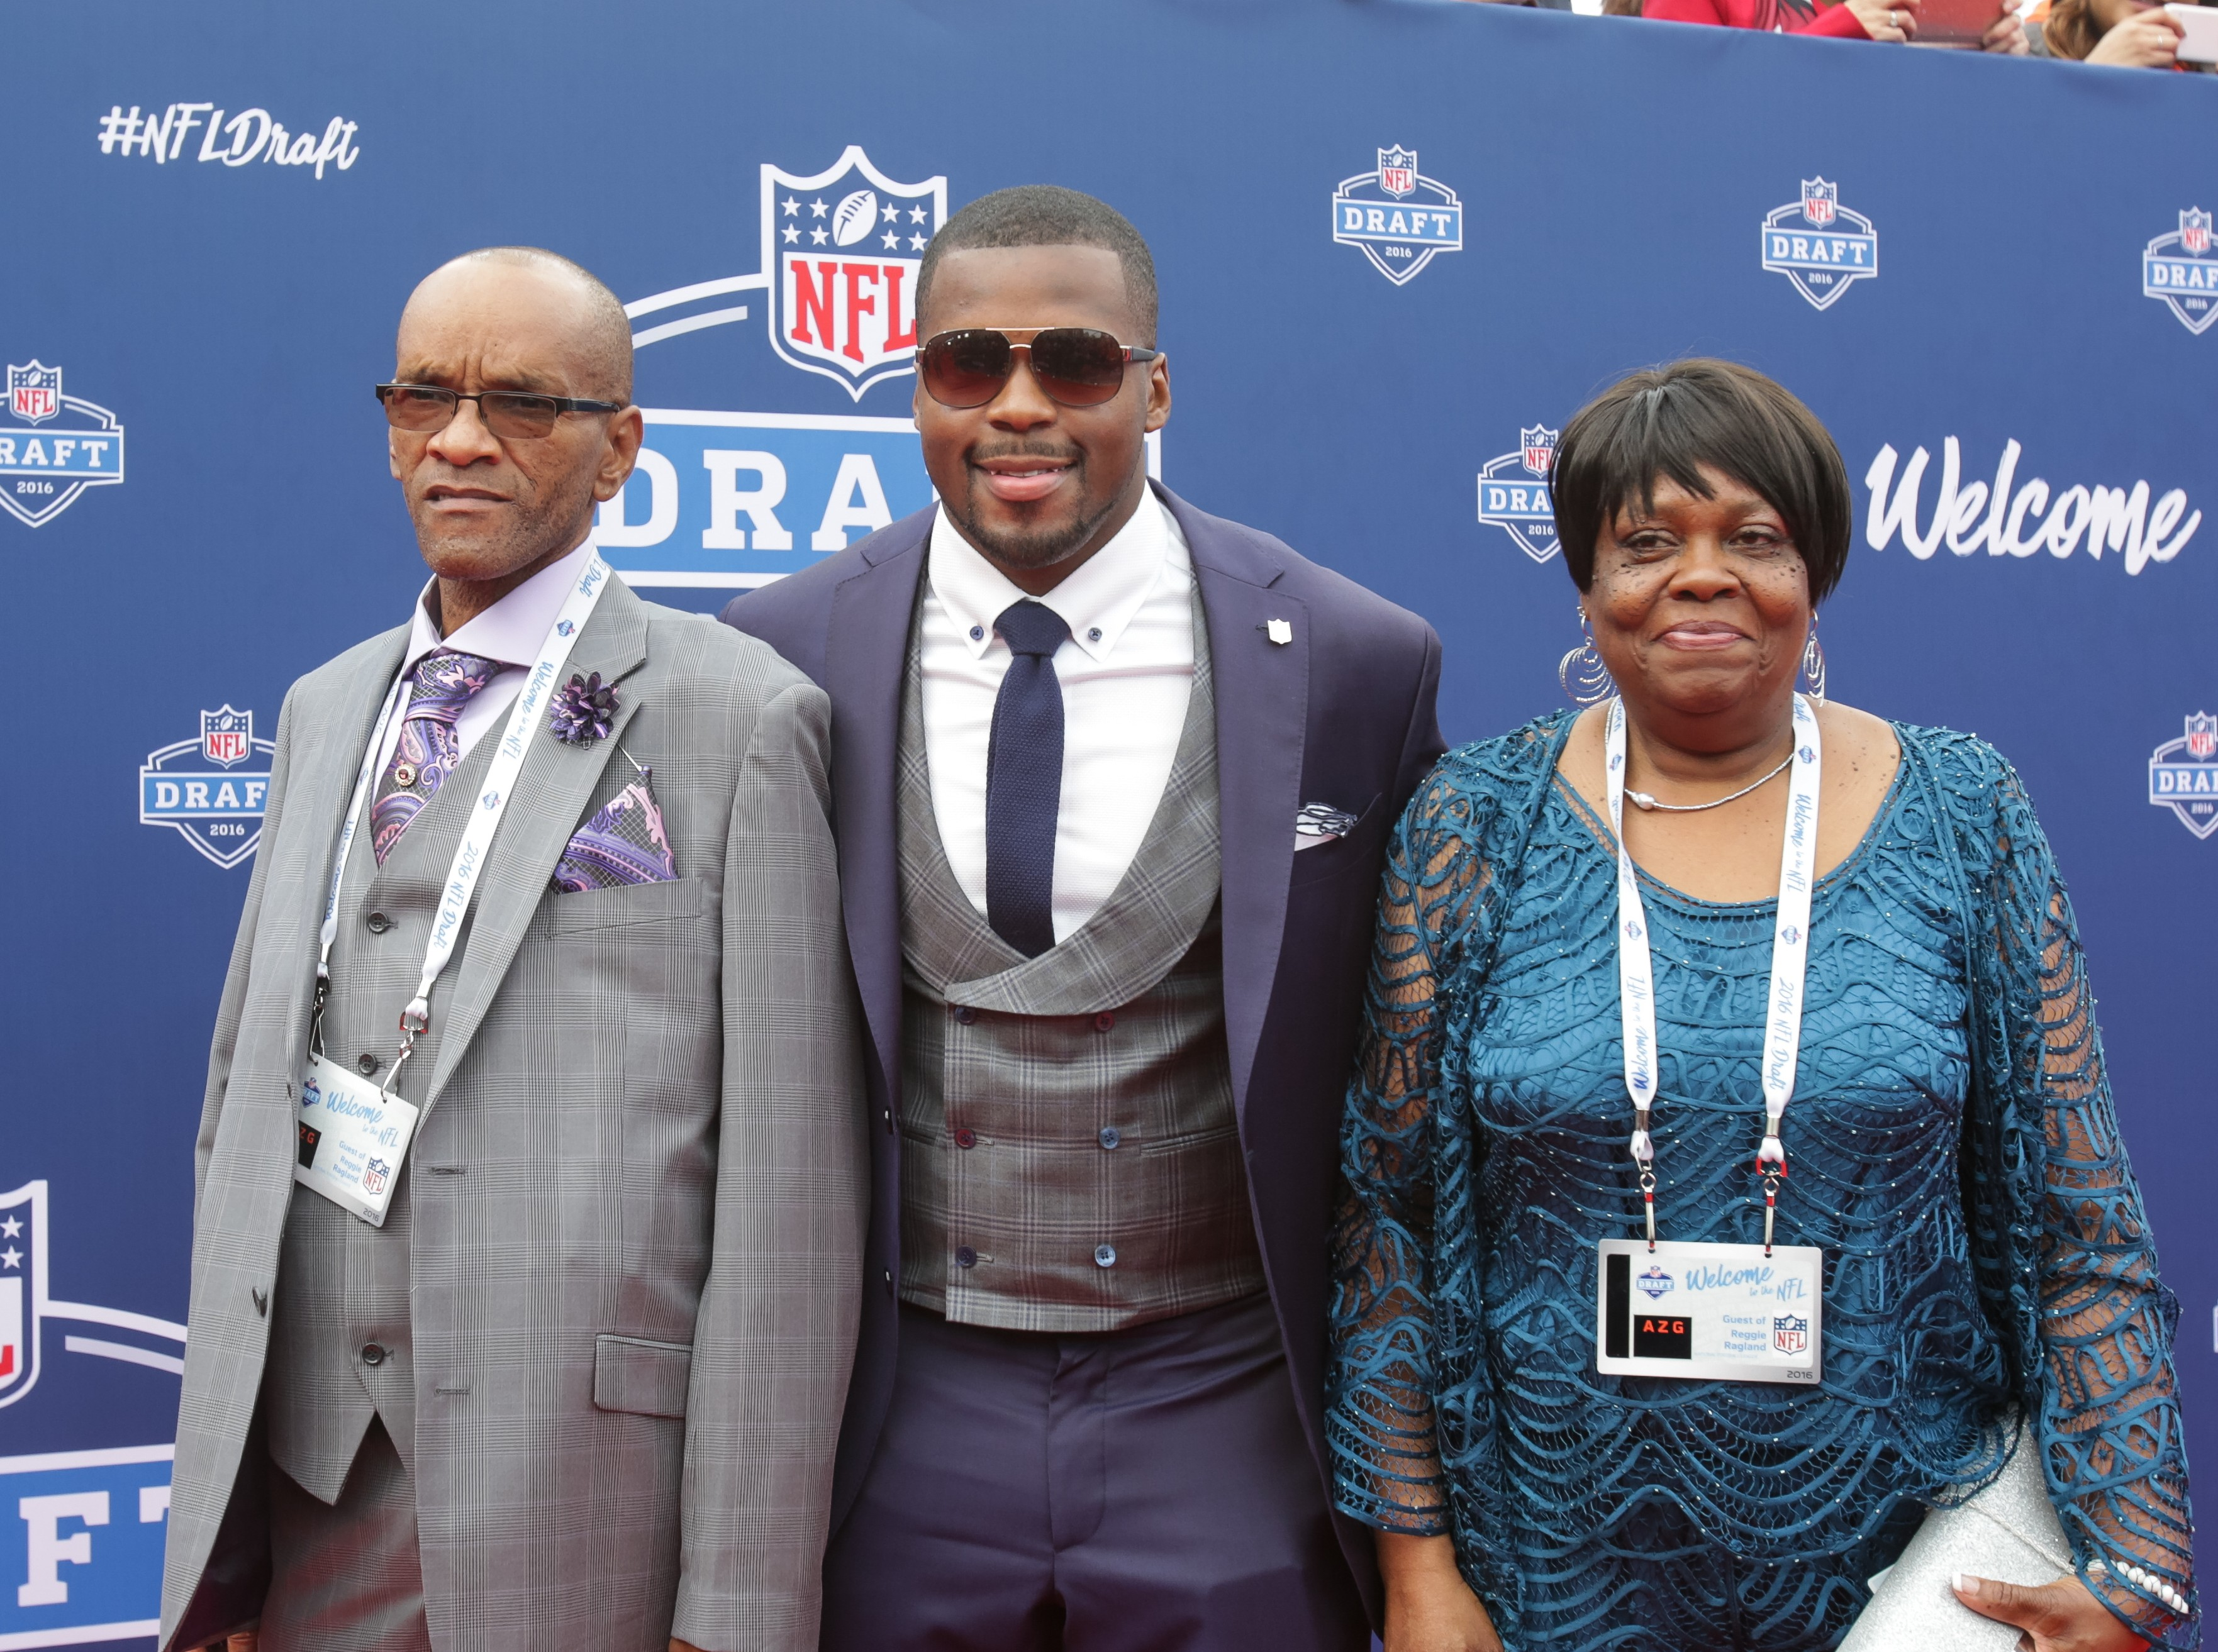 Draftee Reggie Ragland of Alabama with his dad Reggie Ragland, Sr. and mom Ann White arrive at the 2016 NFL Draft on Thursday. (Getty Images)